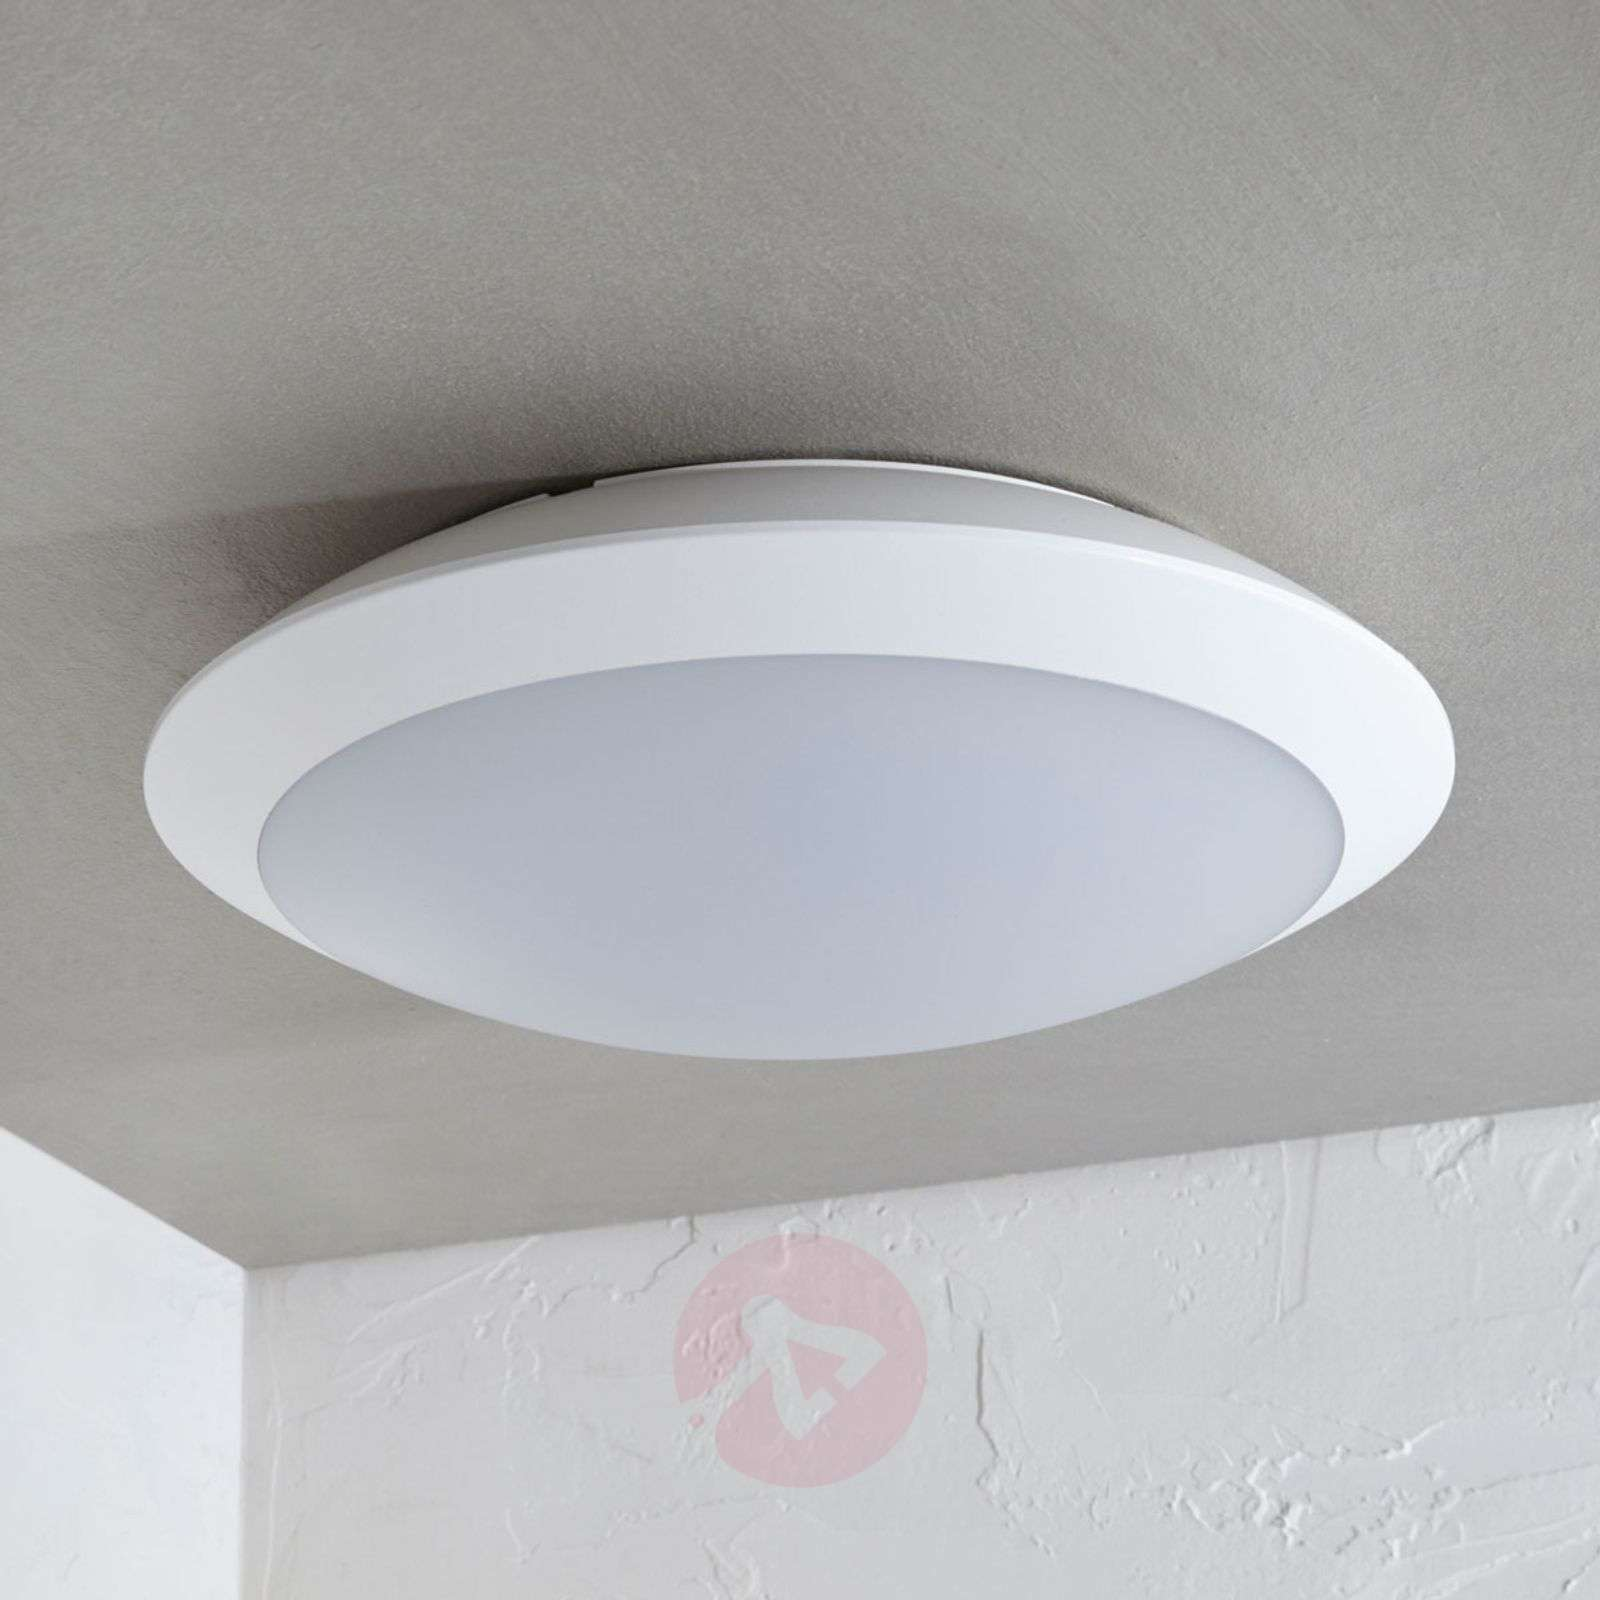 Awe Inspiring Naira Led Outdoor Ceiling Lamp White With Sensor Download Free Architecture Designs Jebrpmadebymaigaardcom